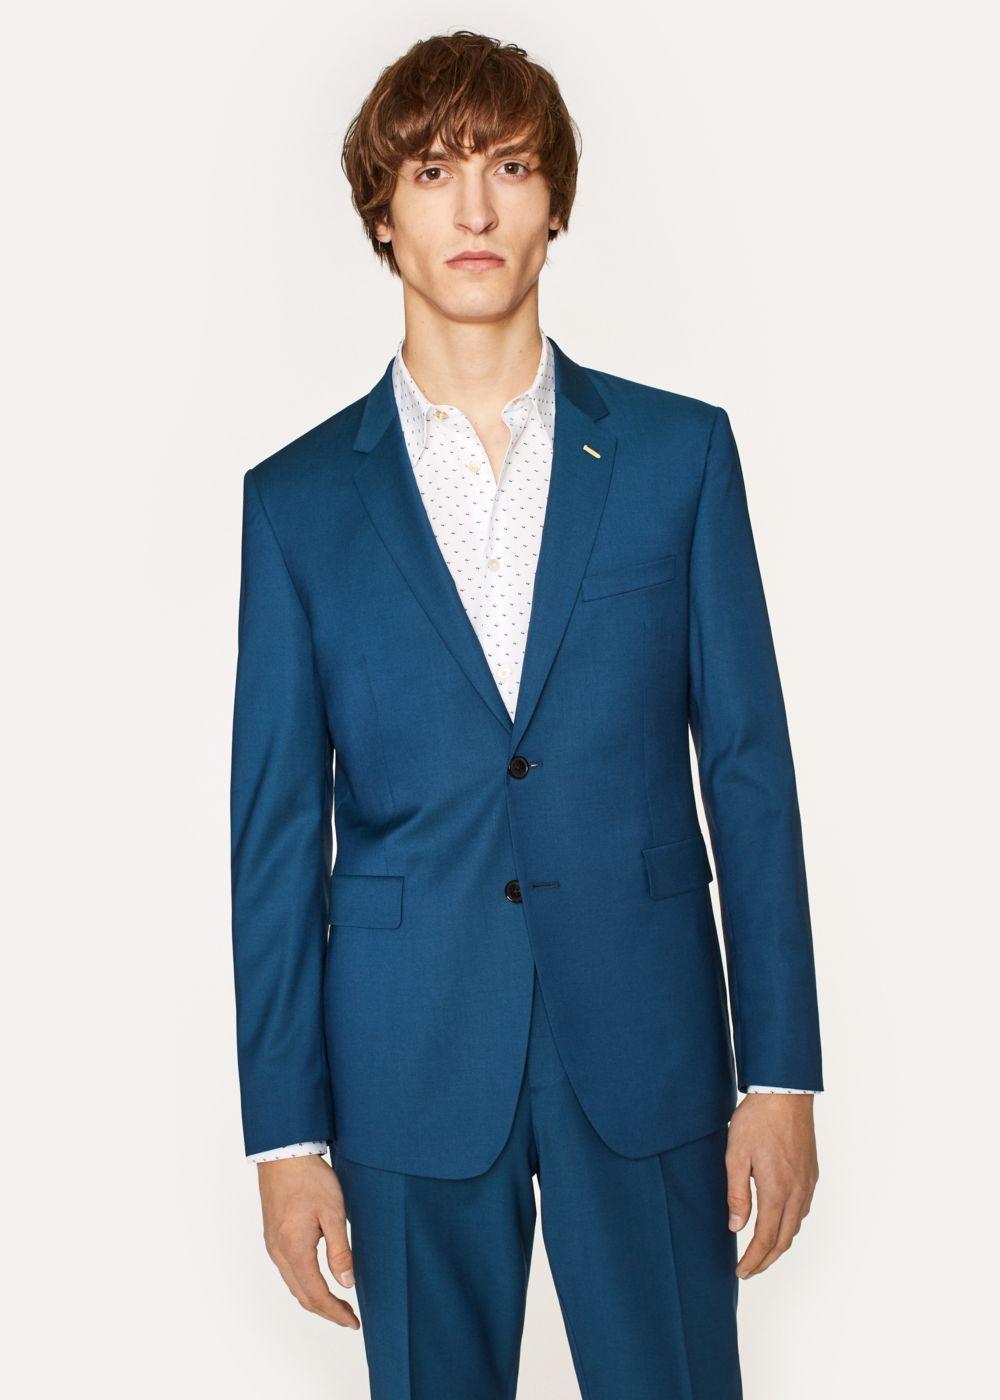 f563de67708fc5 Men's Slim-Fit Dark Petrol Wool Blazer - Paul Smith | Colour ...